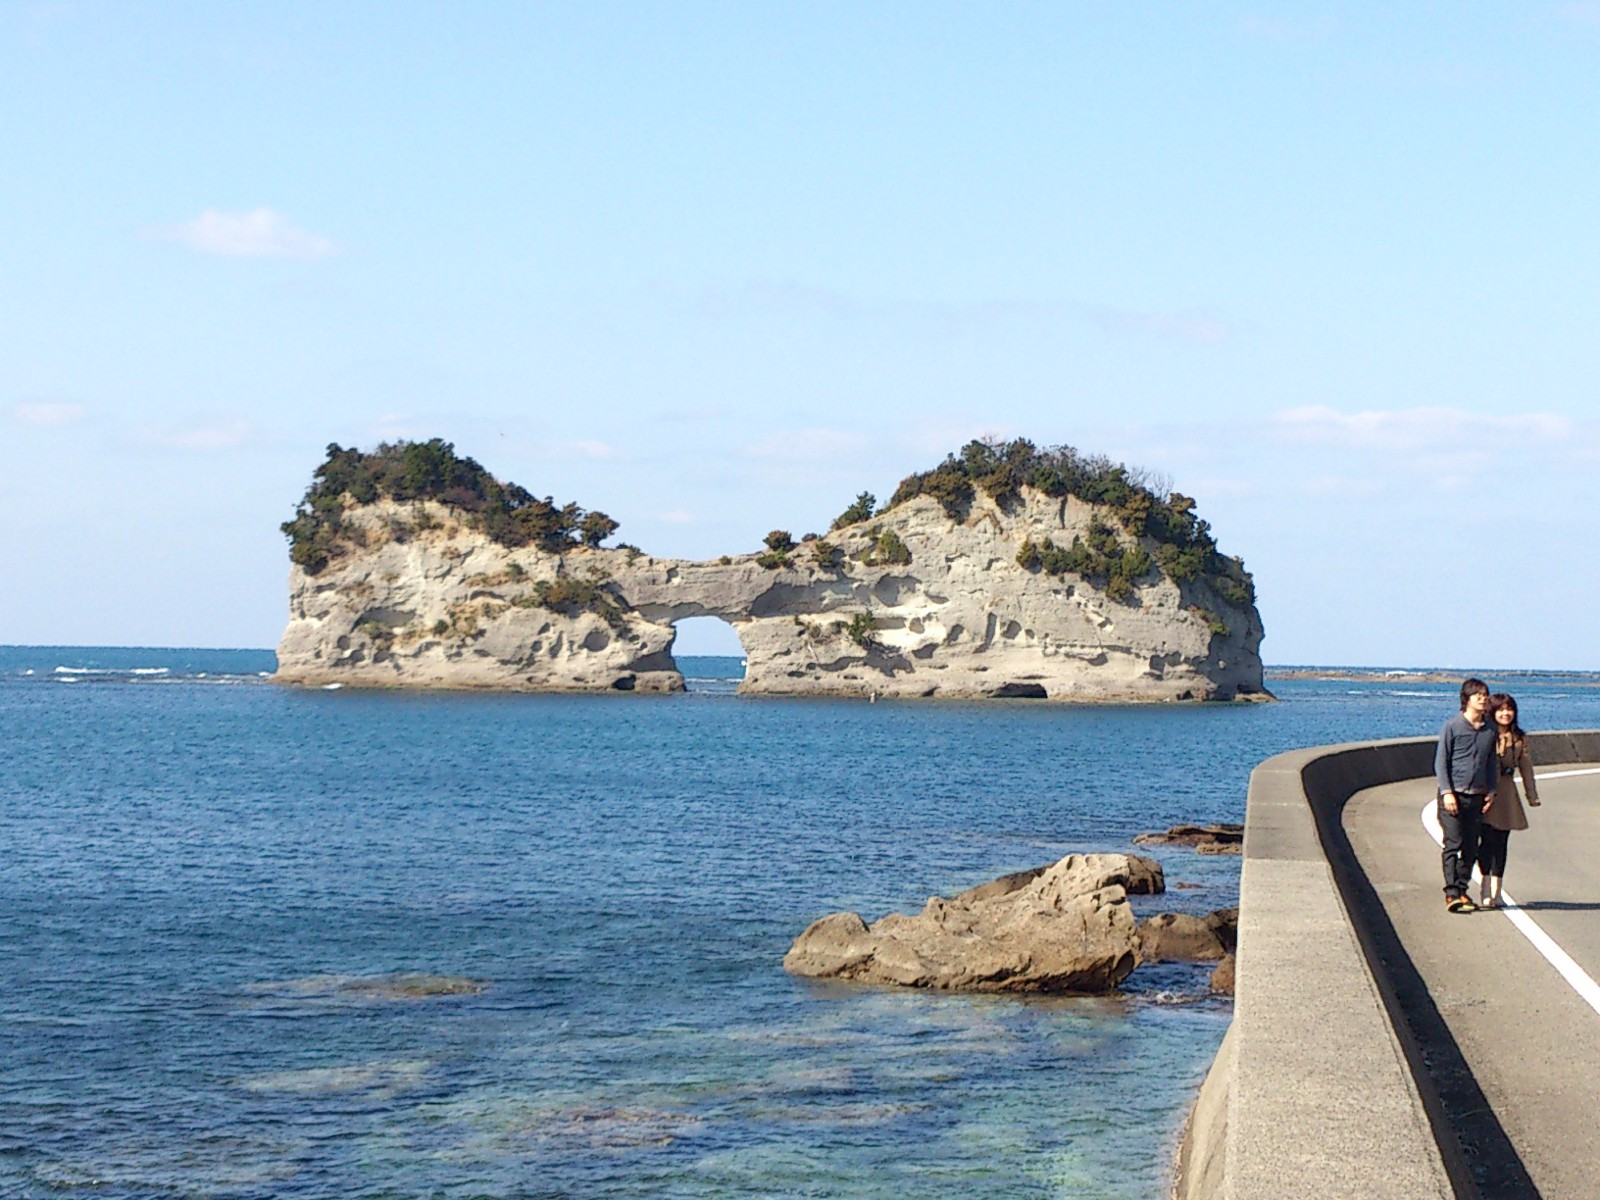 The scenic view around Shirahama Beach